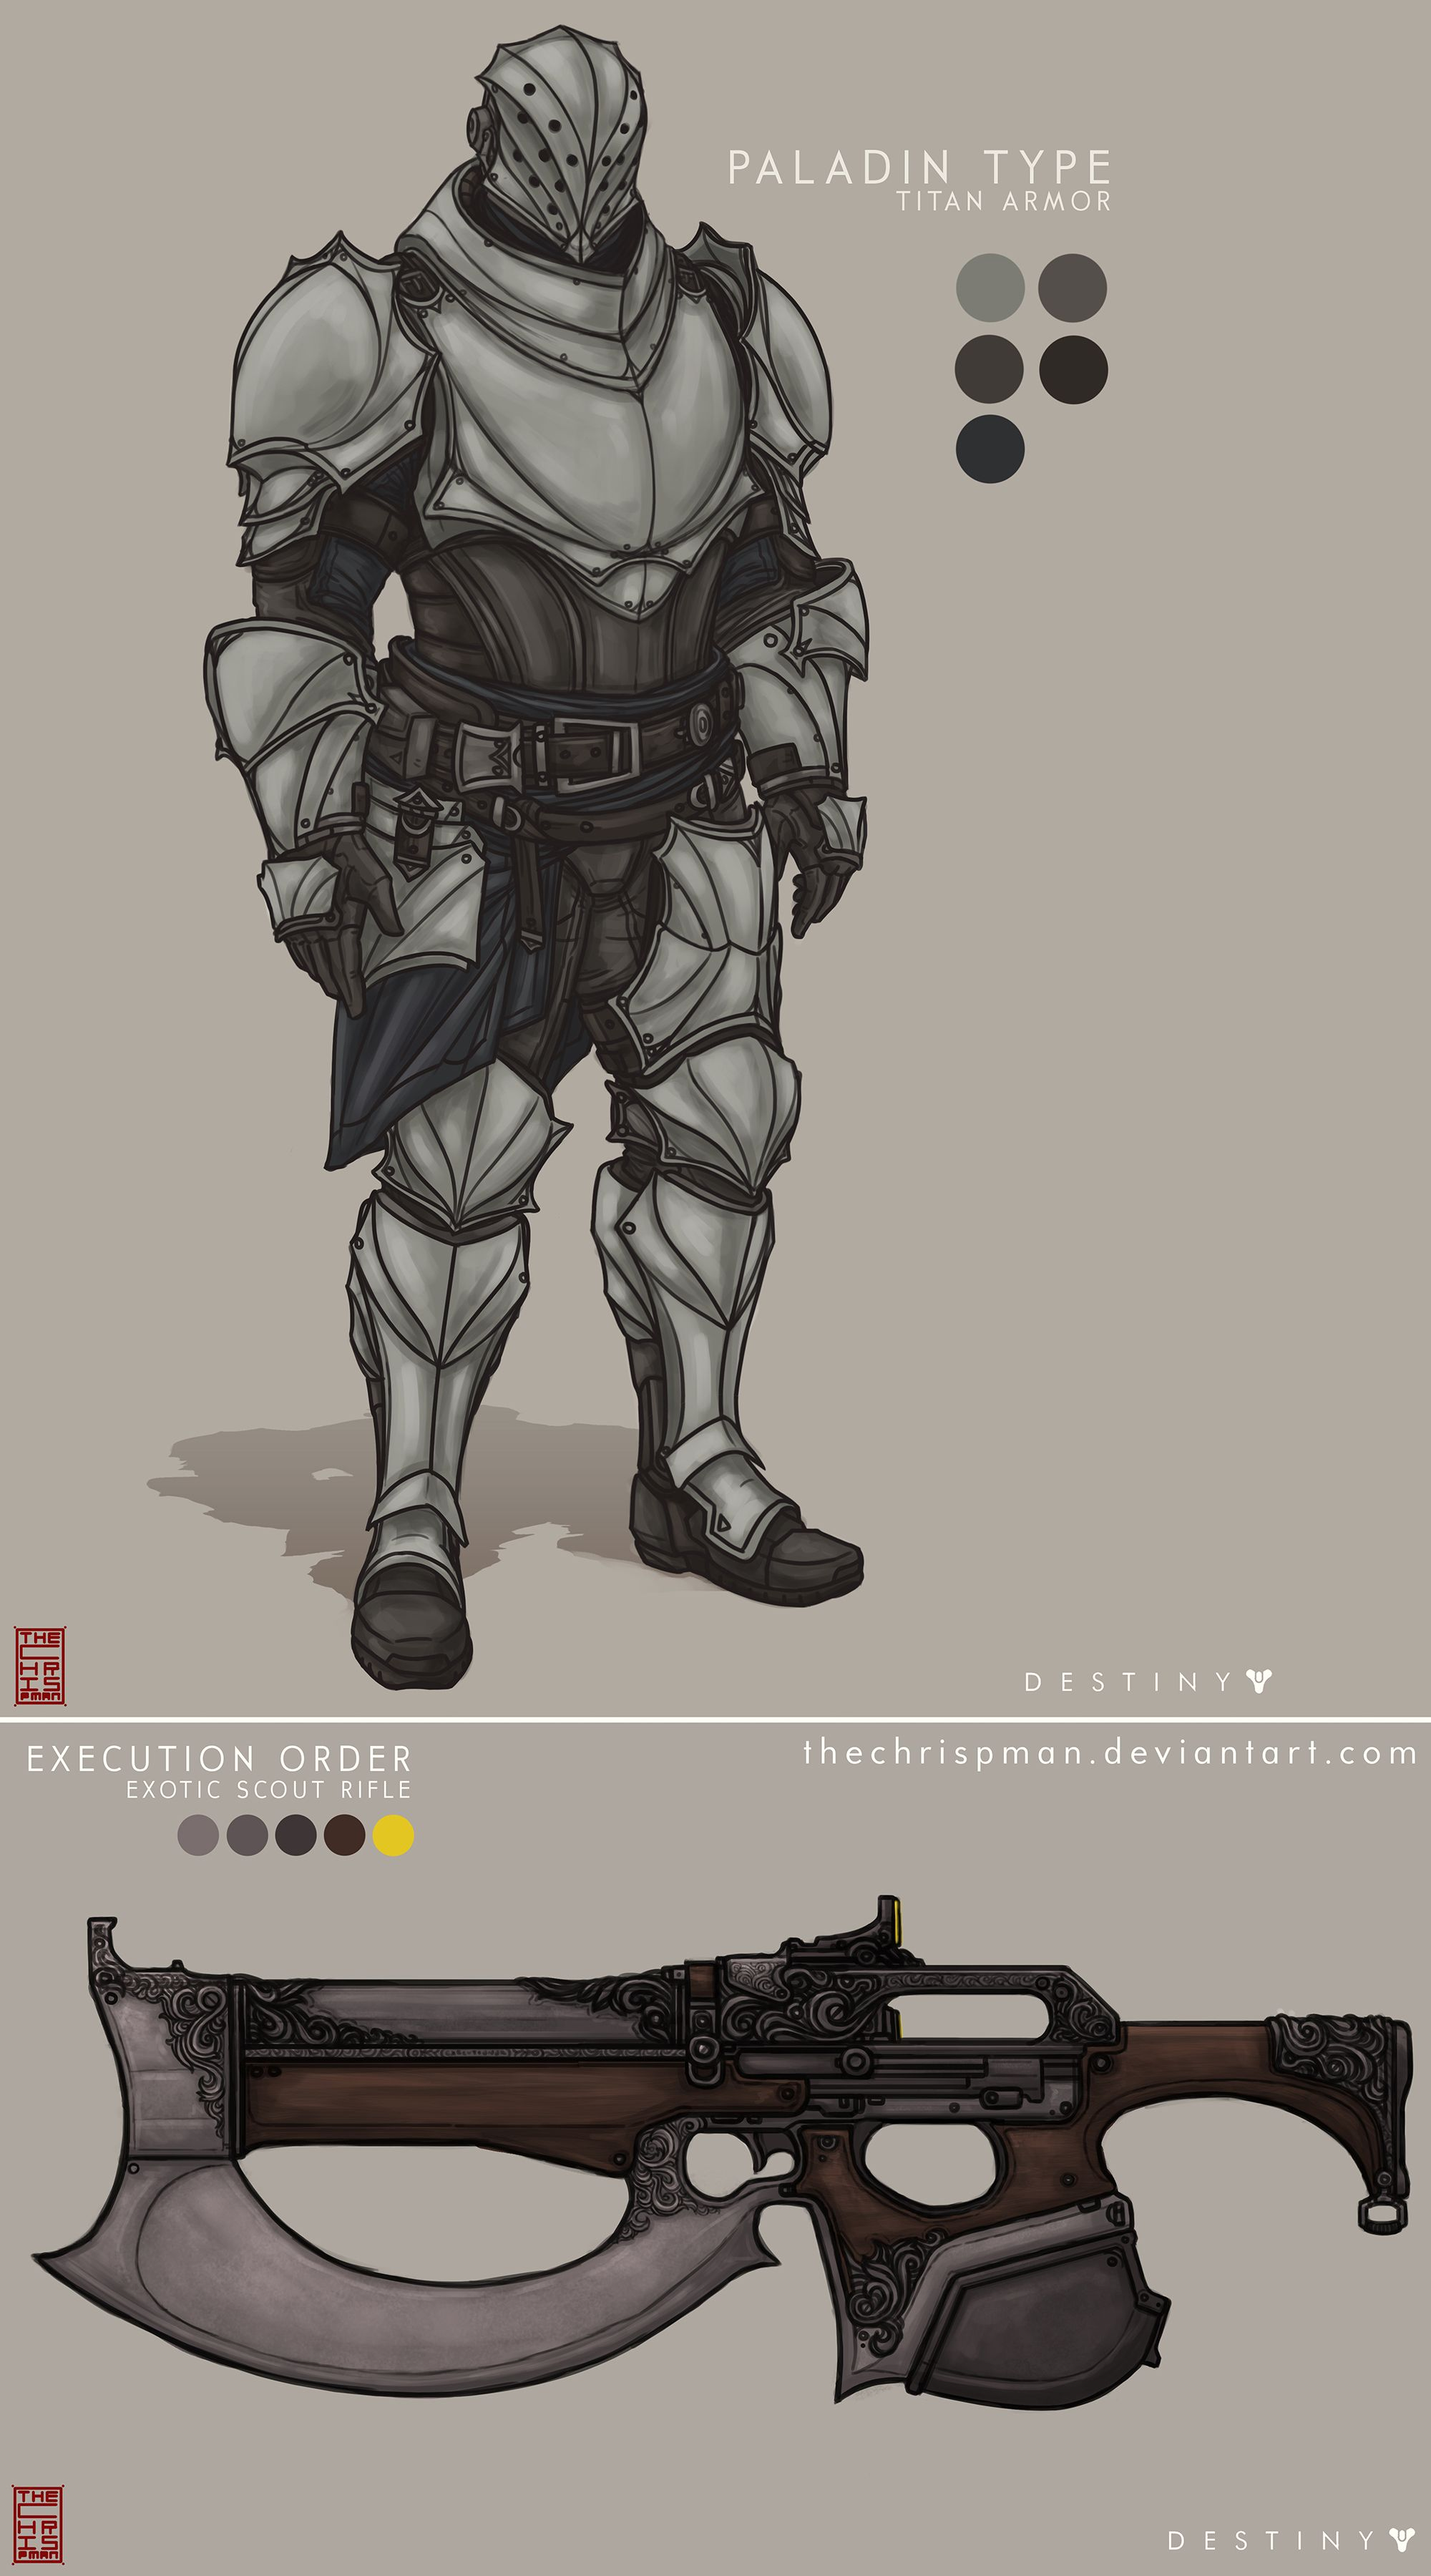 Character Design Course Free : Fan made concept art paladin type titan armor execution